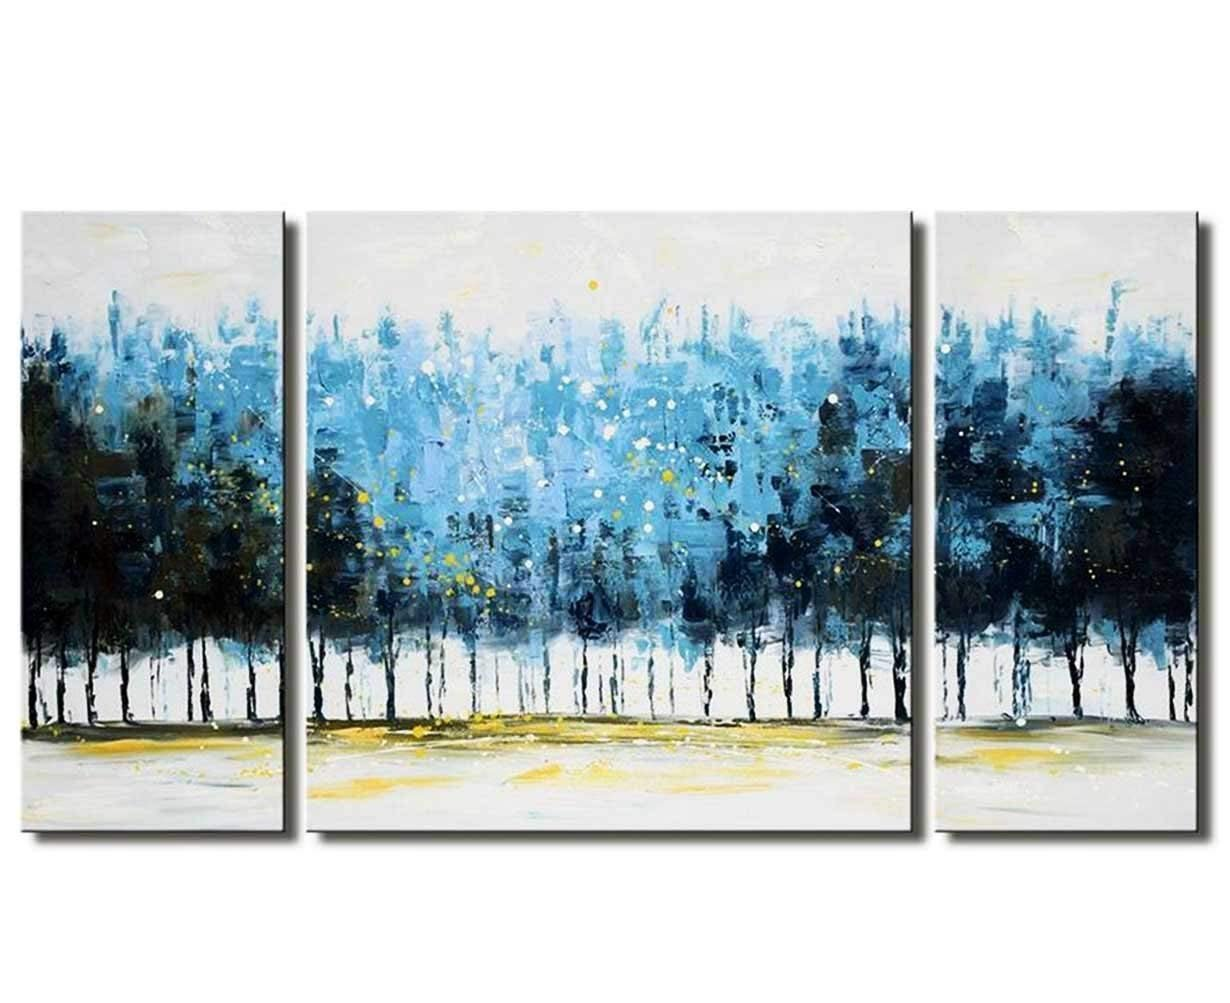 Tree Wall Art Set Hand-Painted 'Mysterious Forest' 3-Piece Large Modern Blue Gallery-Wrapped Framed Oil Painting on Canvas Living Room Decor (Blue, 20x20inchesx1 Panel, 10x20inchesx2 Panel) Aitesi Art